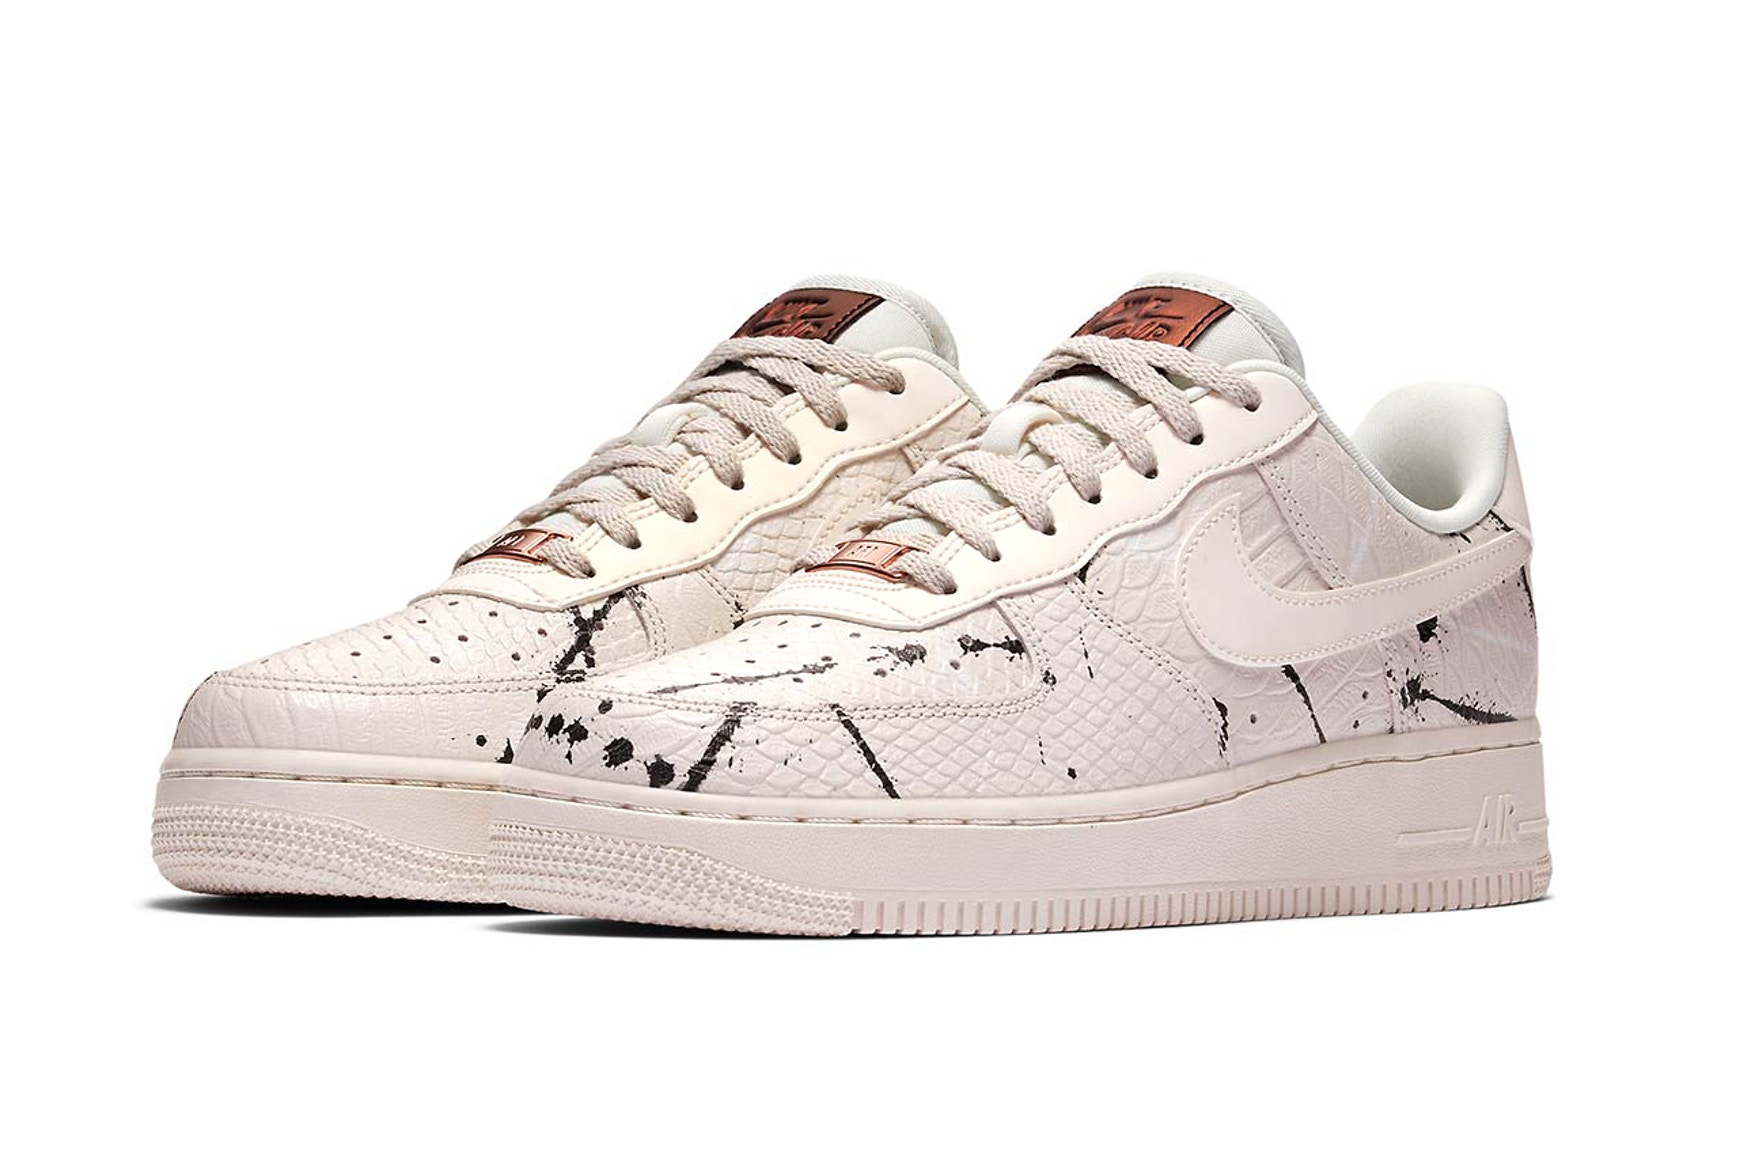 nike-air-force-1-low-phantom-snakeskin-release-2